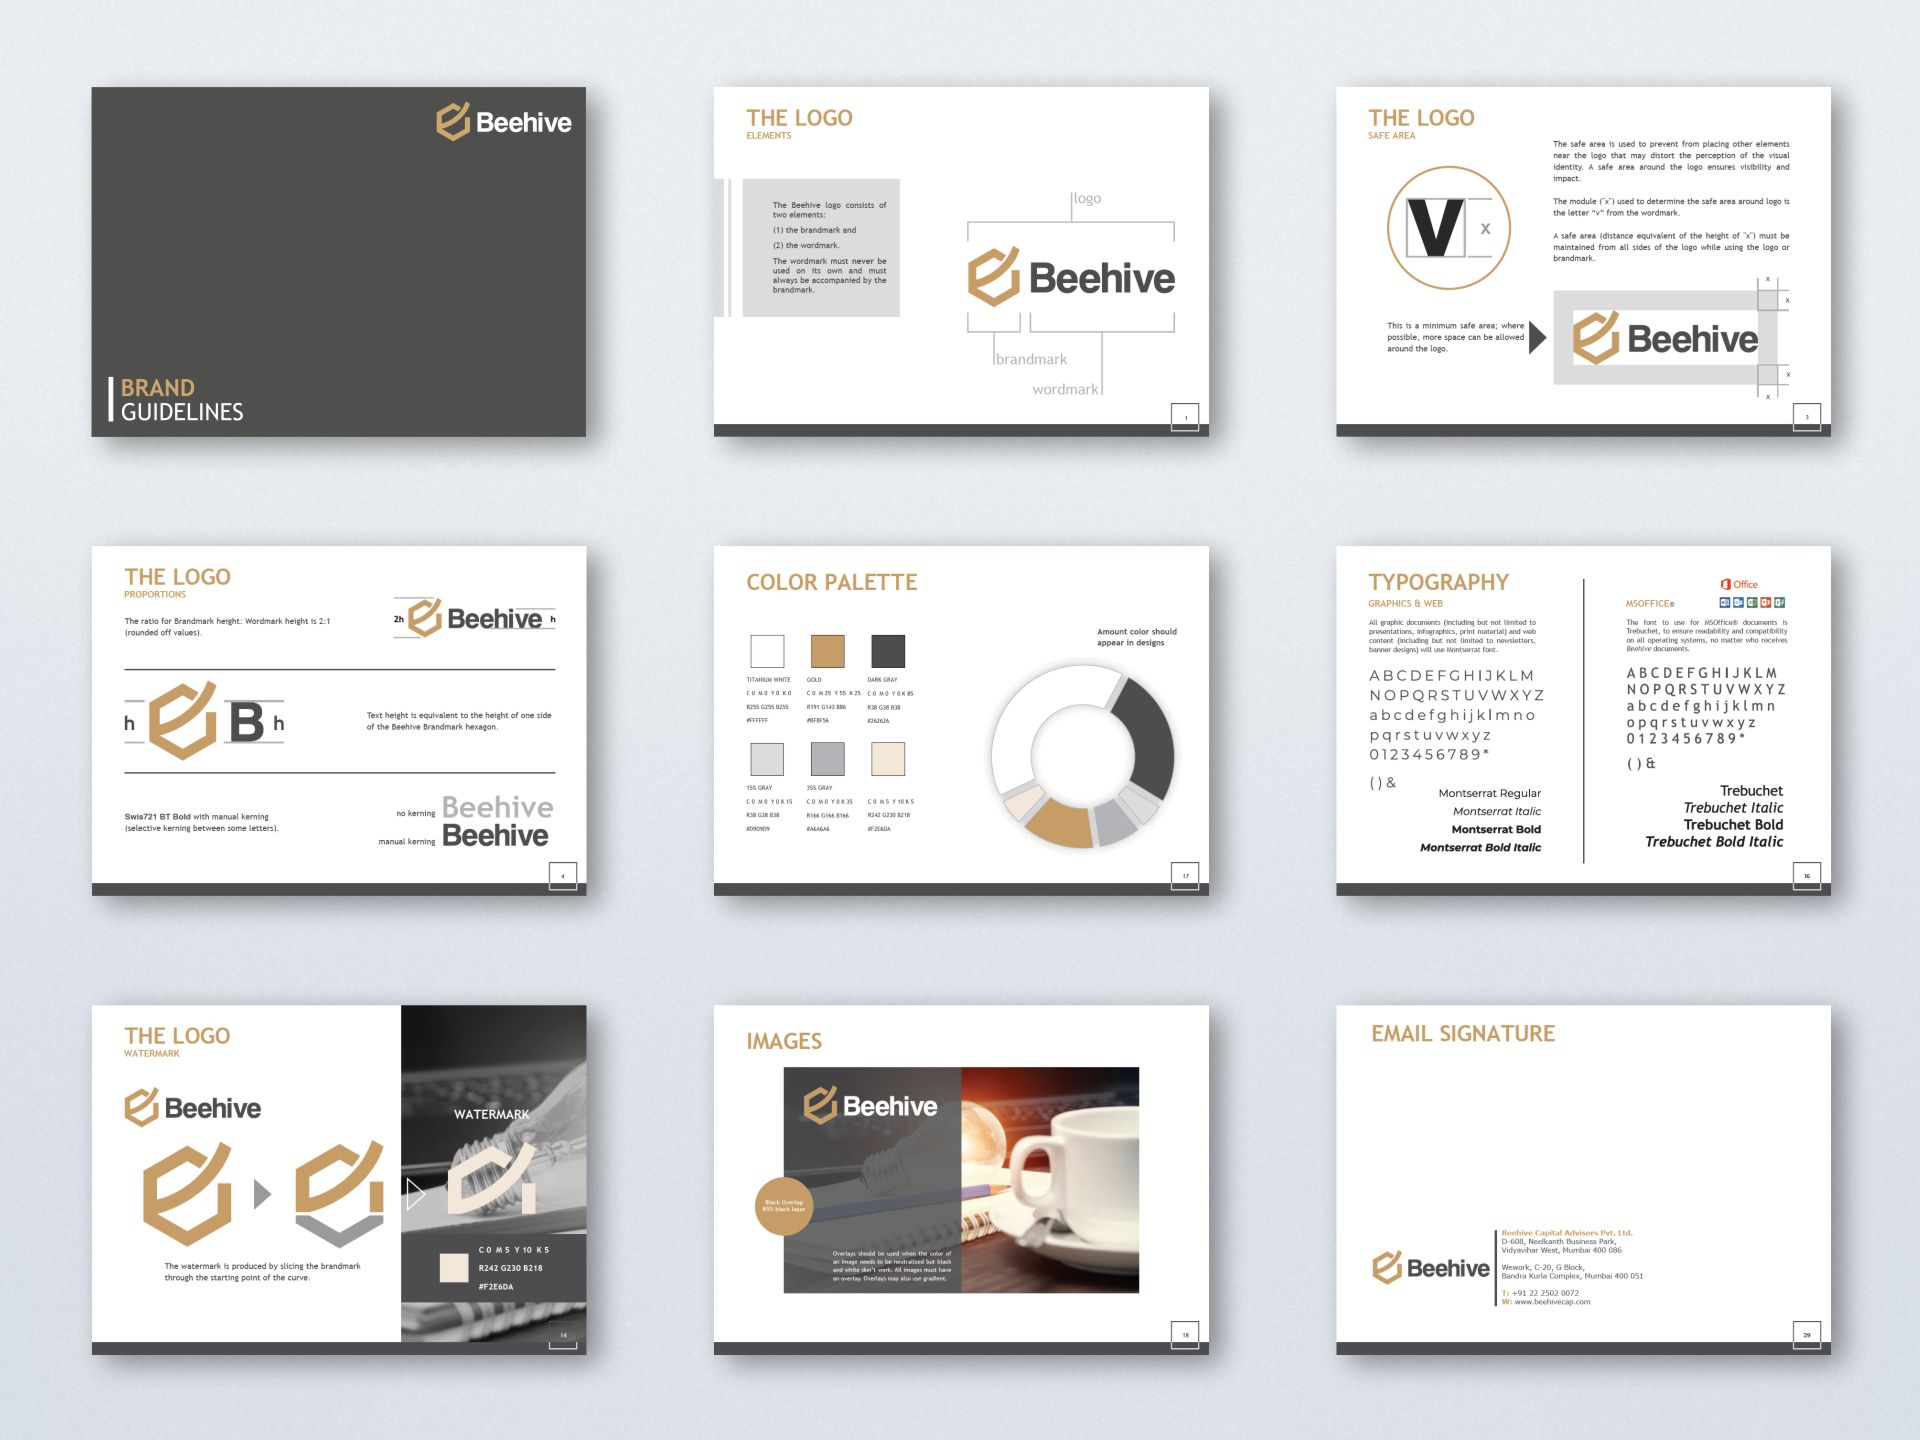 Beehive Capital Advisors - Brand Guidelines